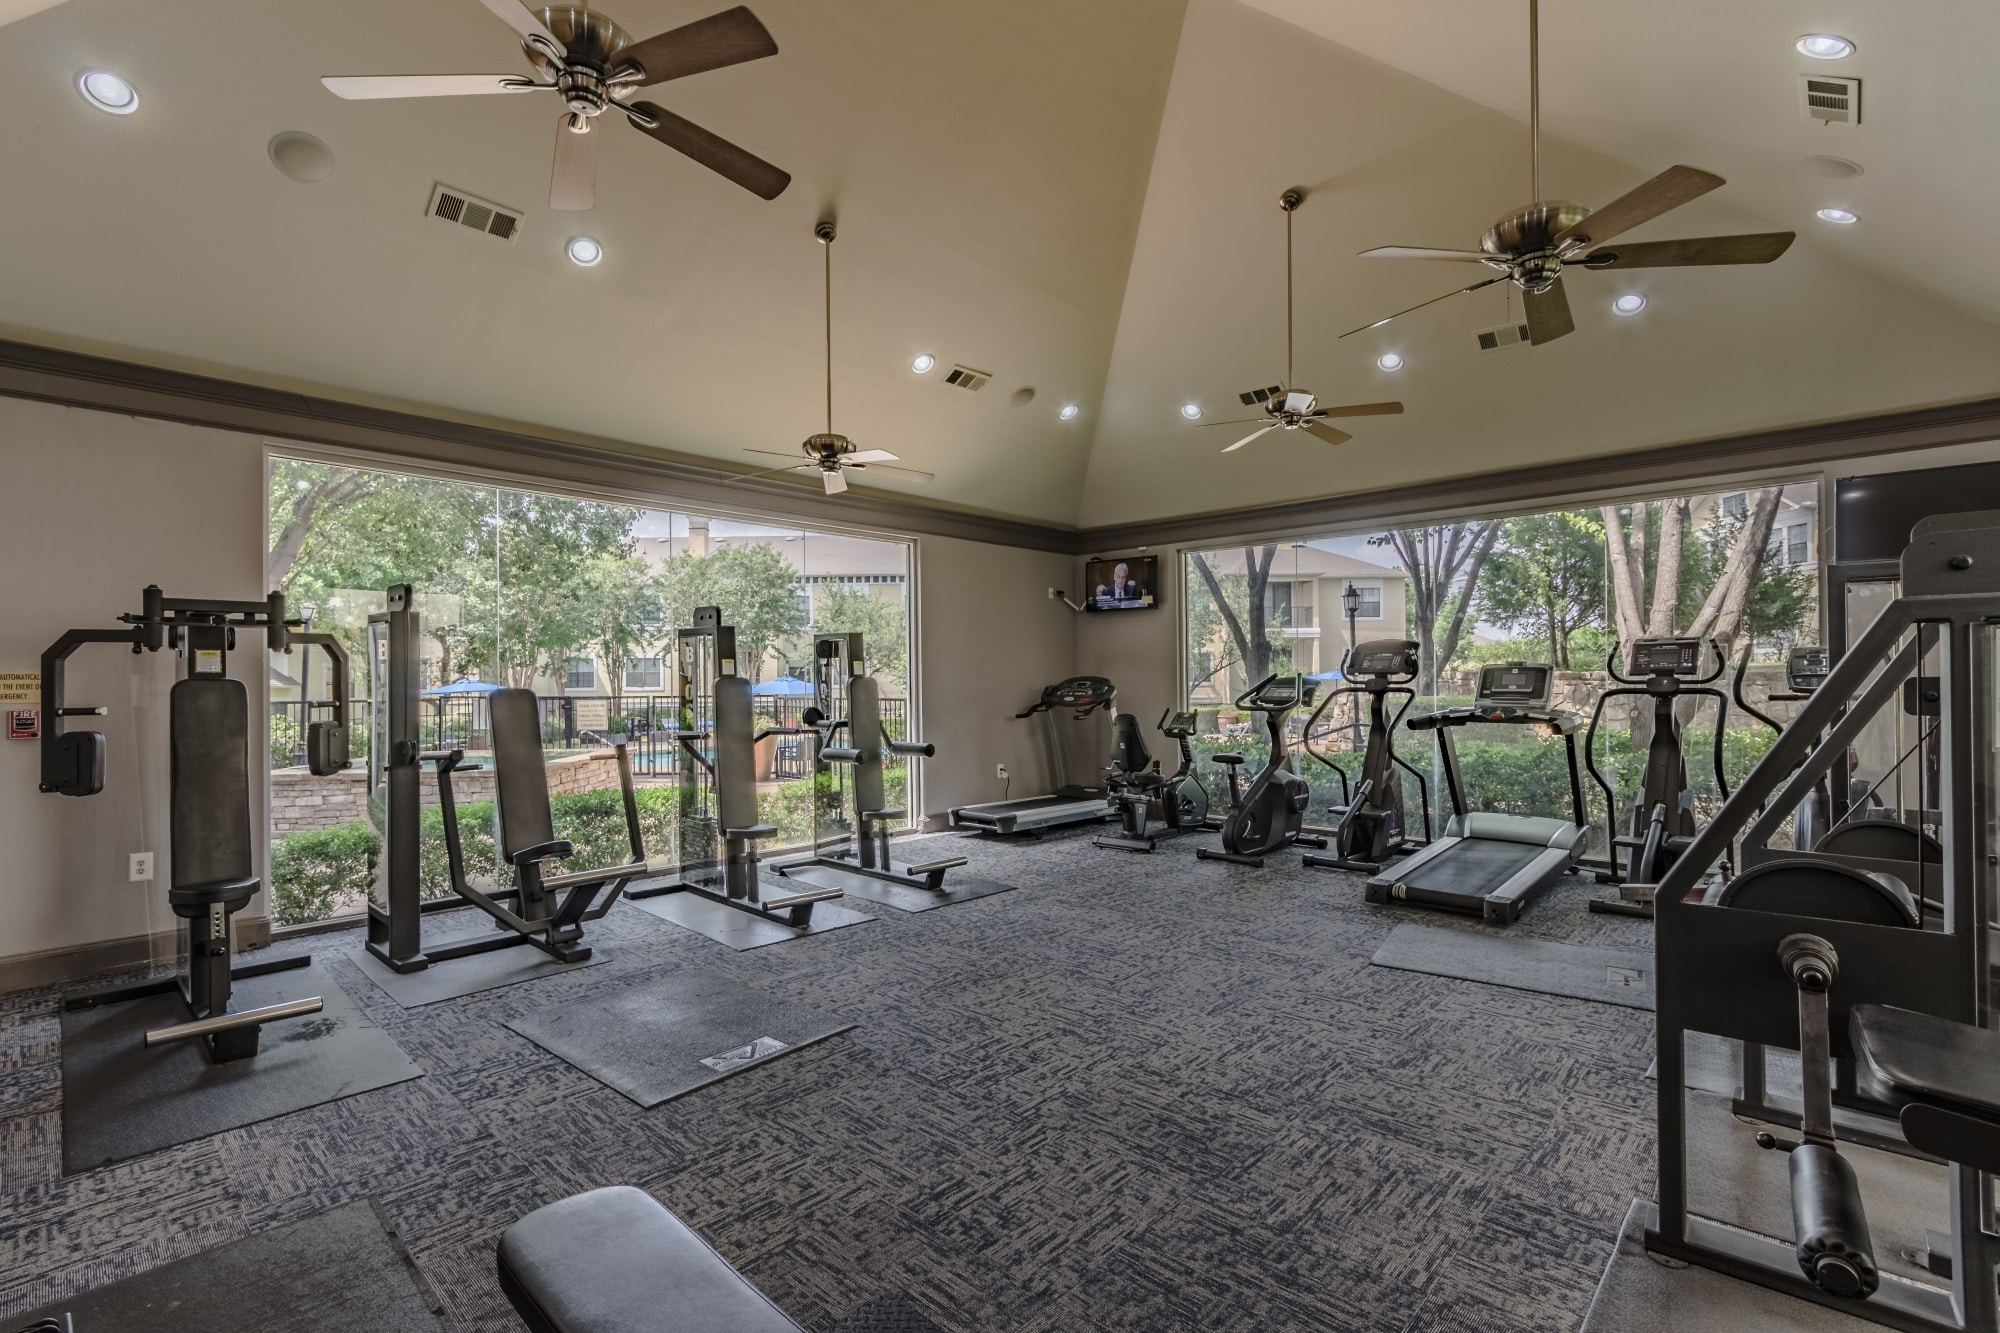 Fitness Center with Club-Style Equipment